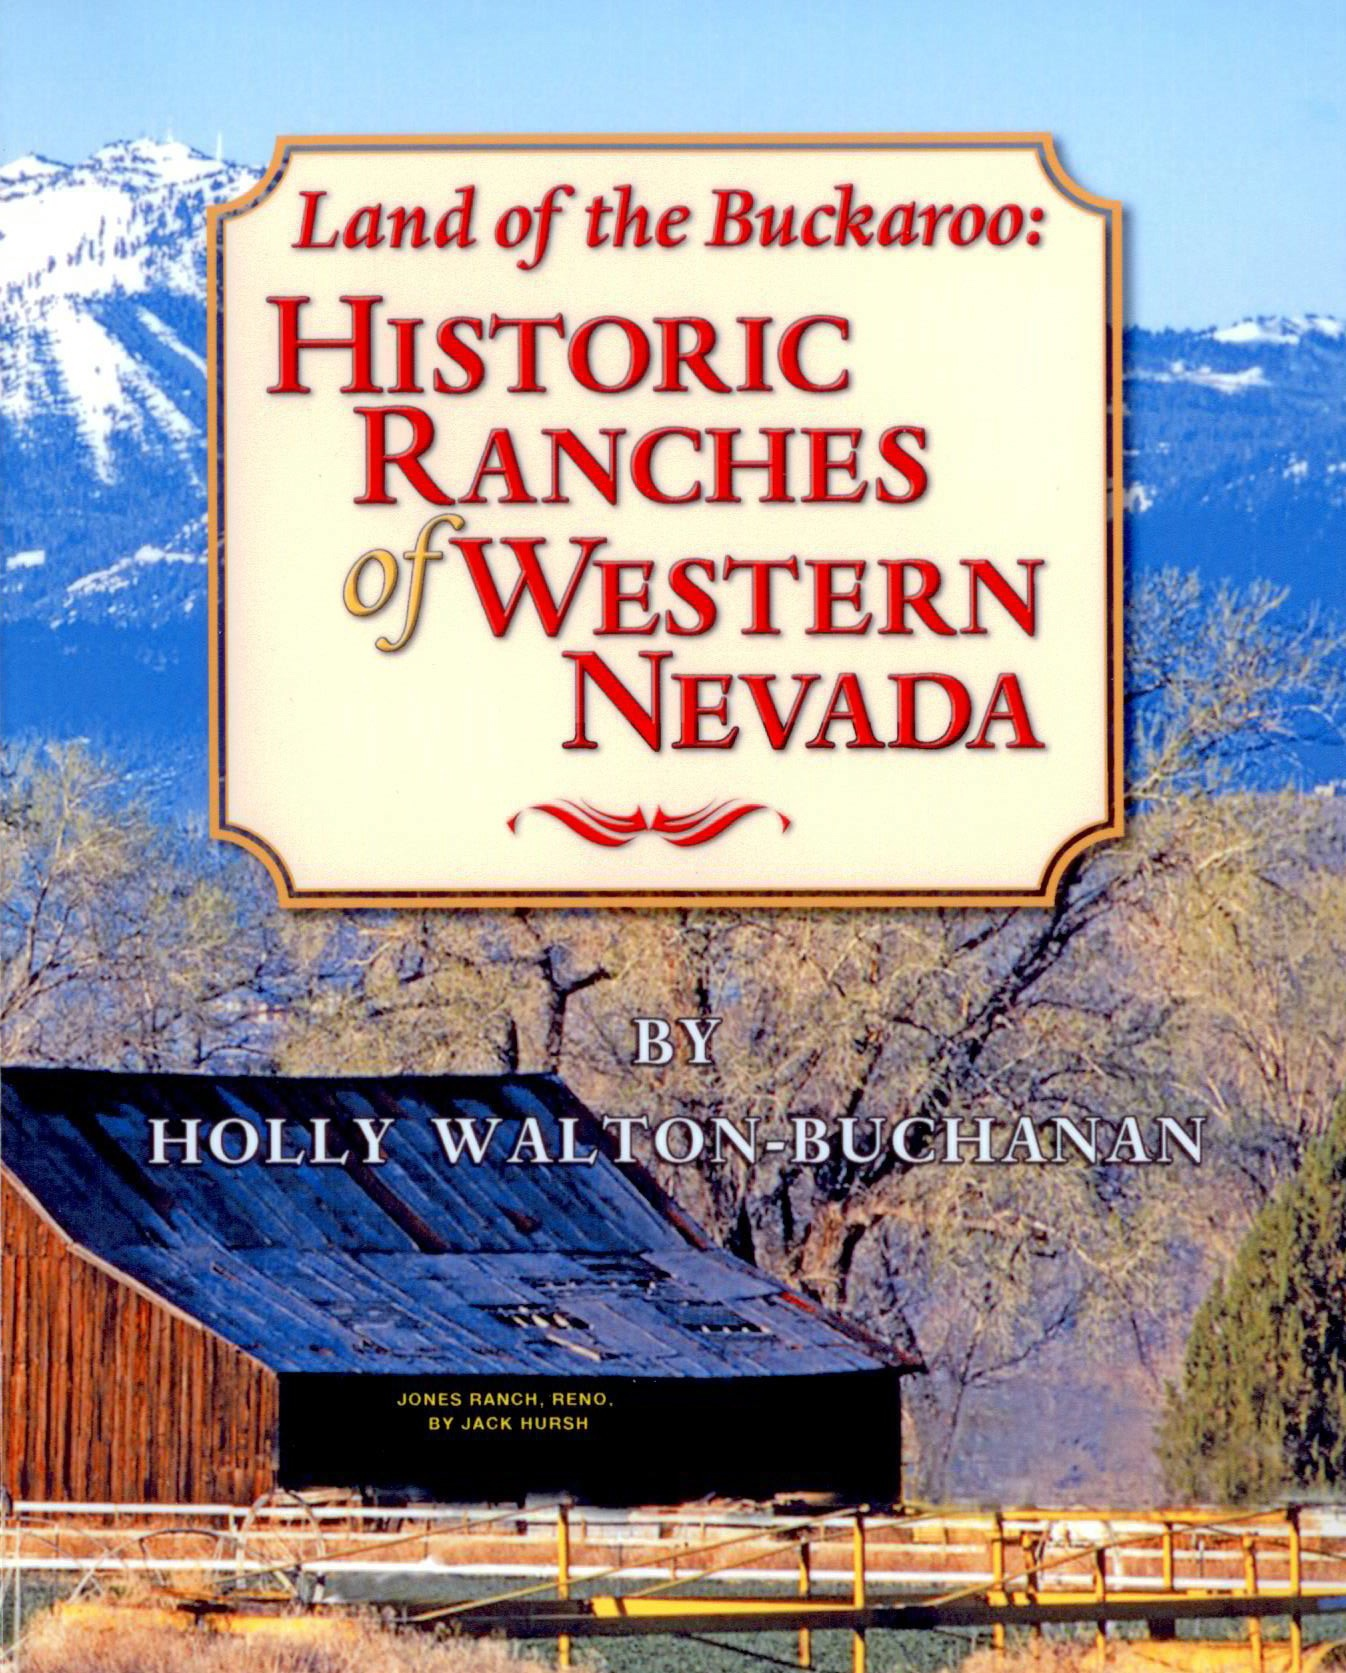 Historic Ranches of Western Nevada